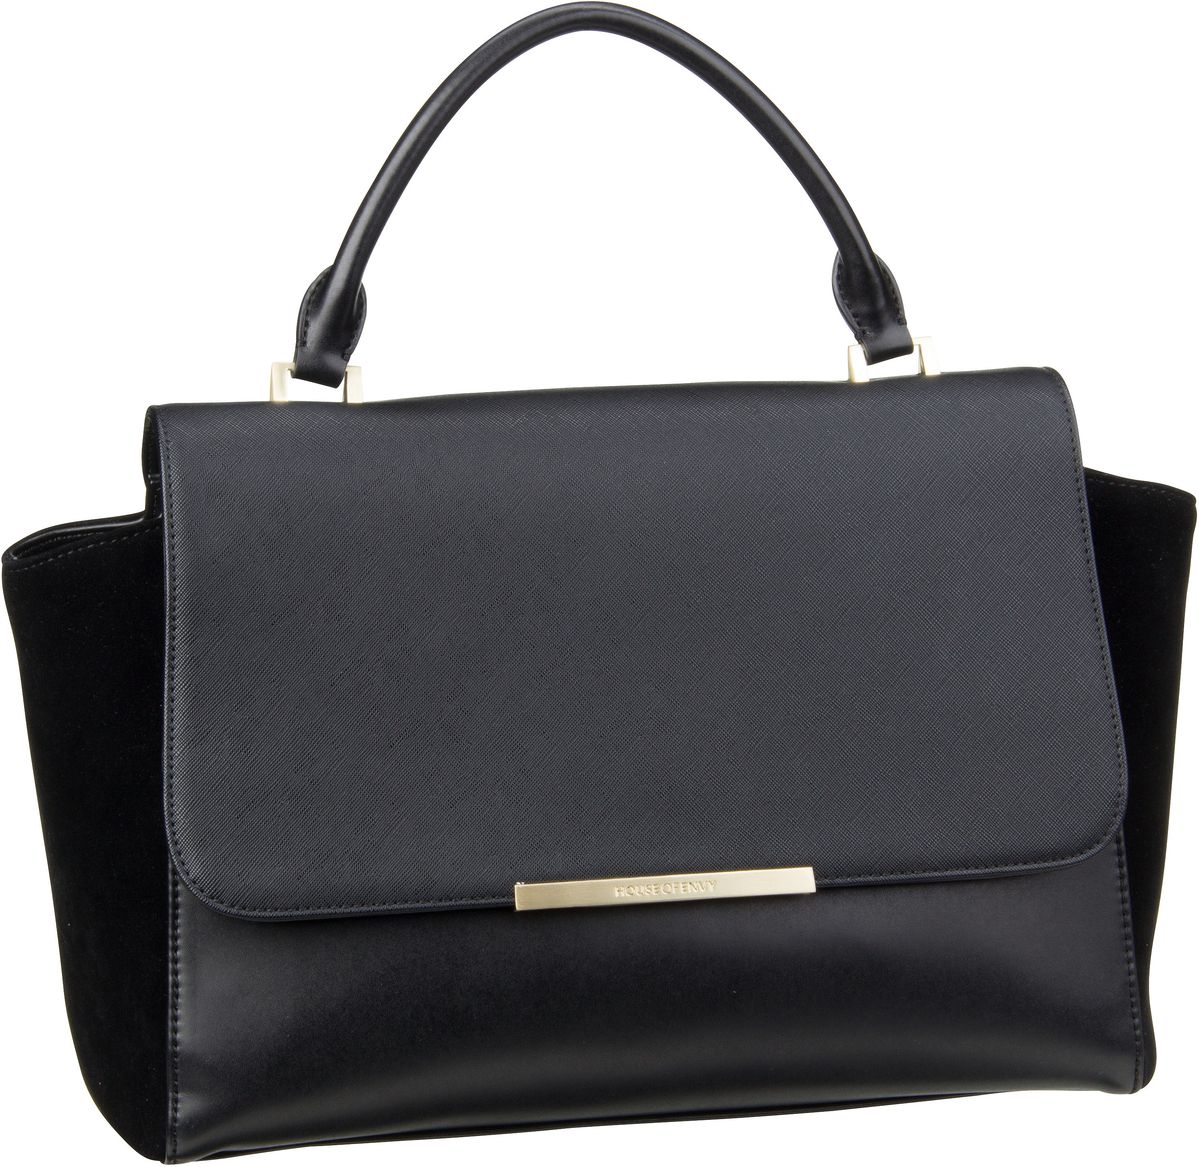 House of Envy Luxurious Black - Handtasche